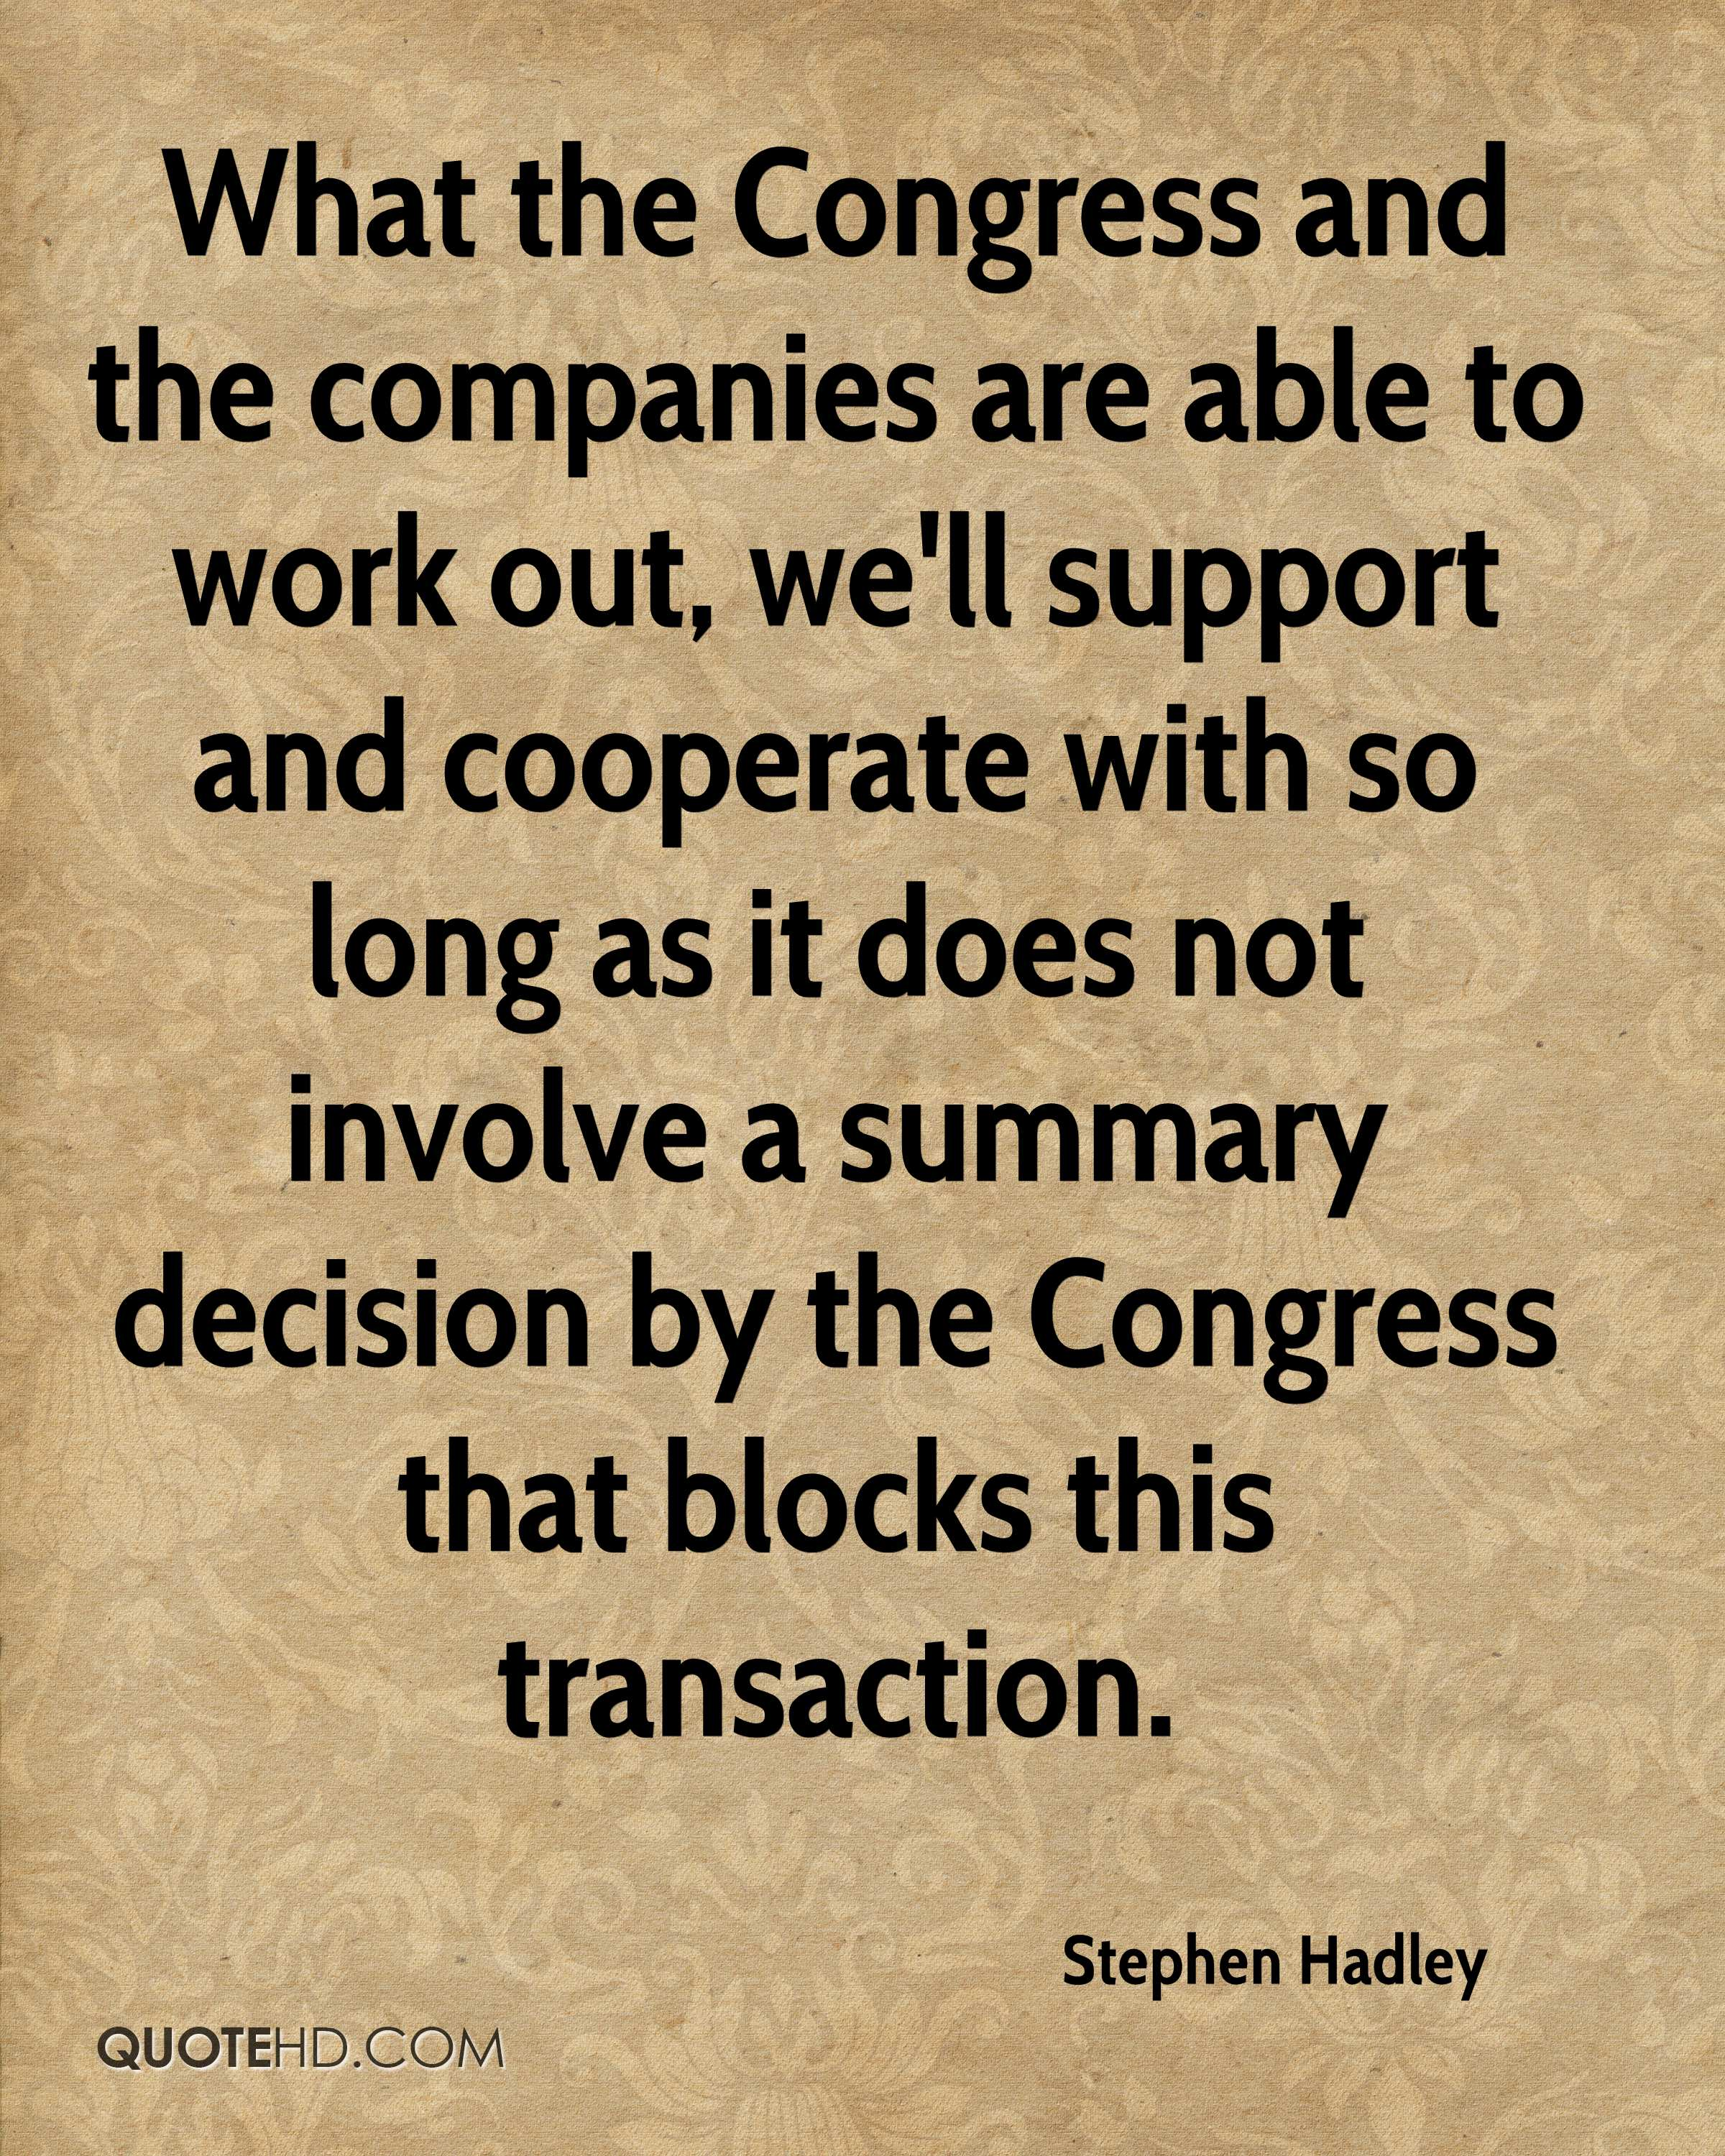 What the Congress and the companies are able to work out, we'll support and cooperate with so long as it does not involve a summary decision by the Congress that blocks this transaction.